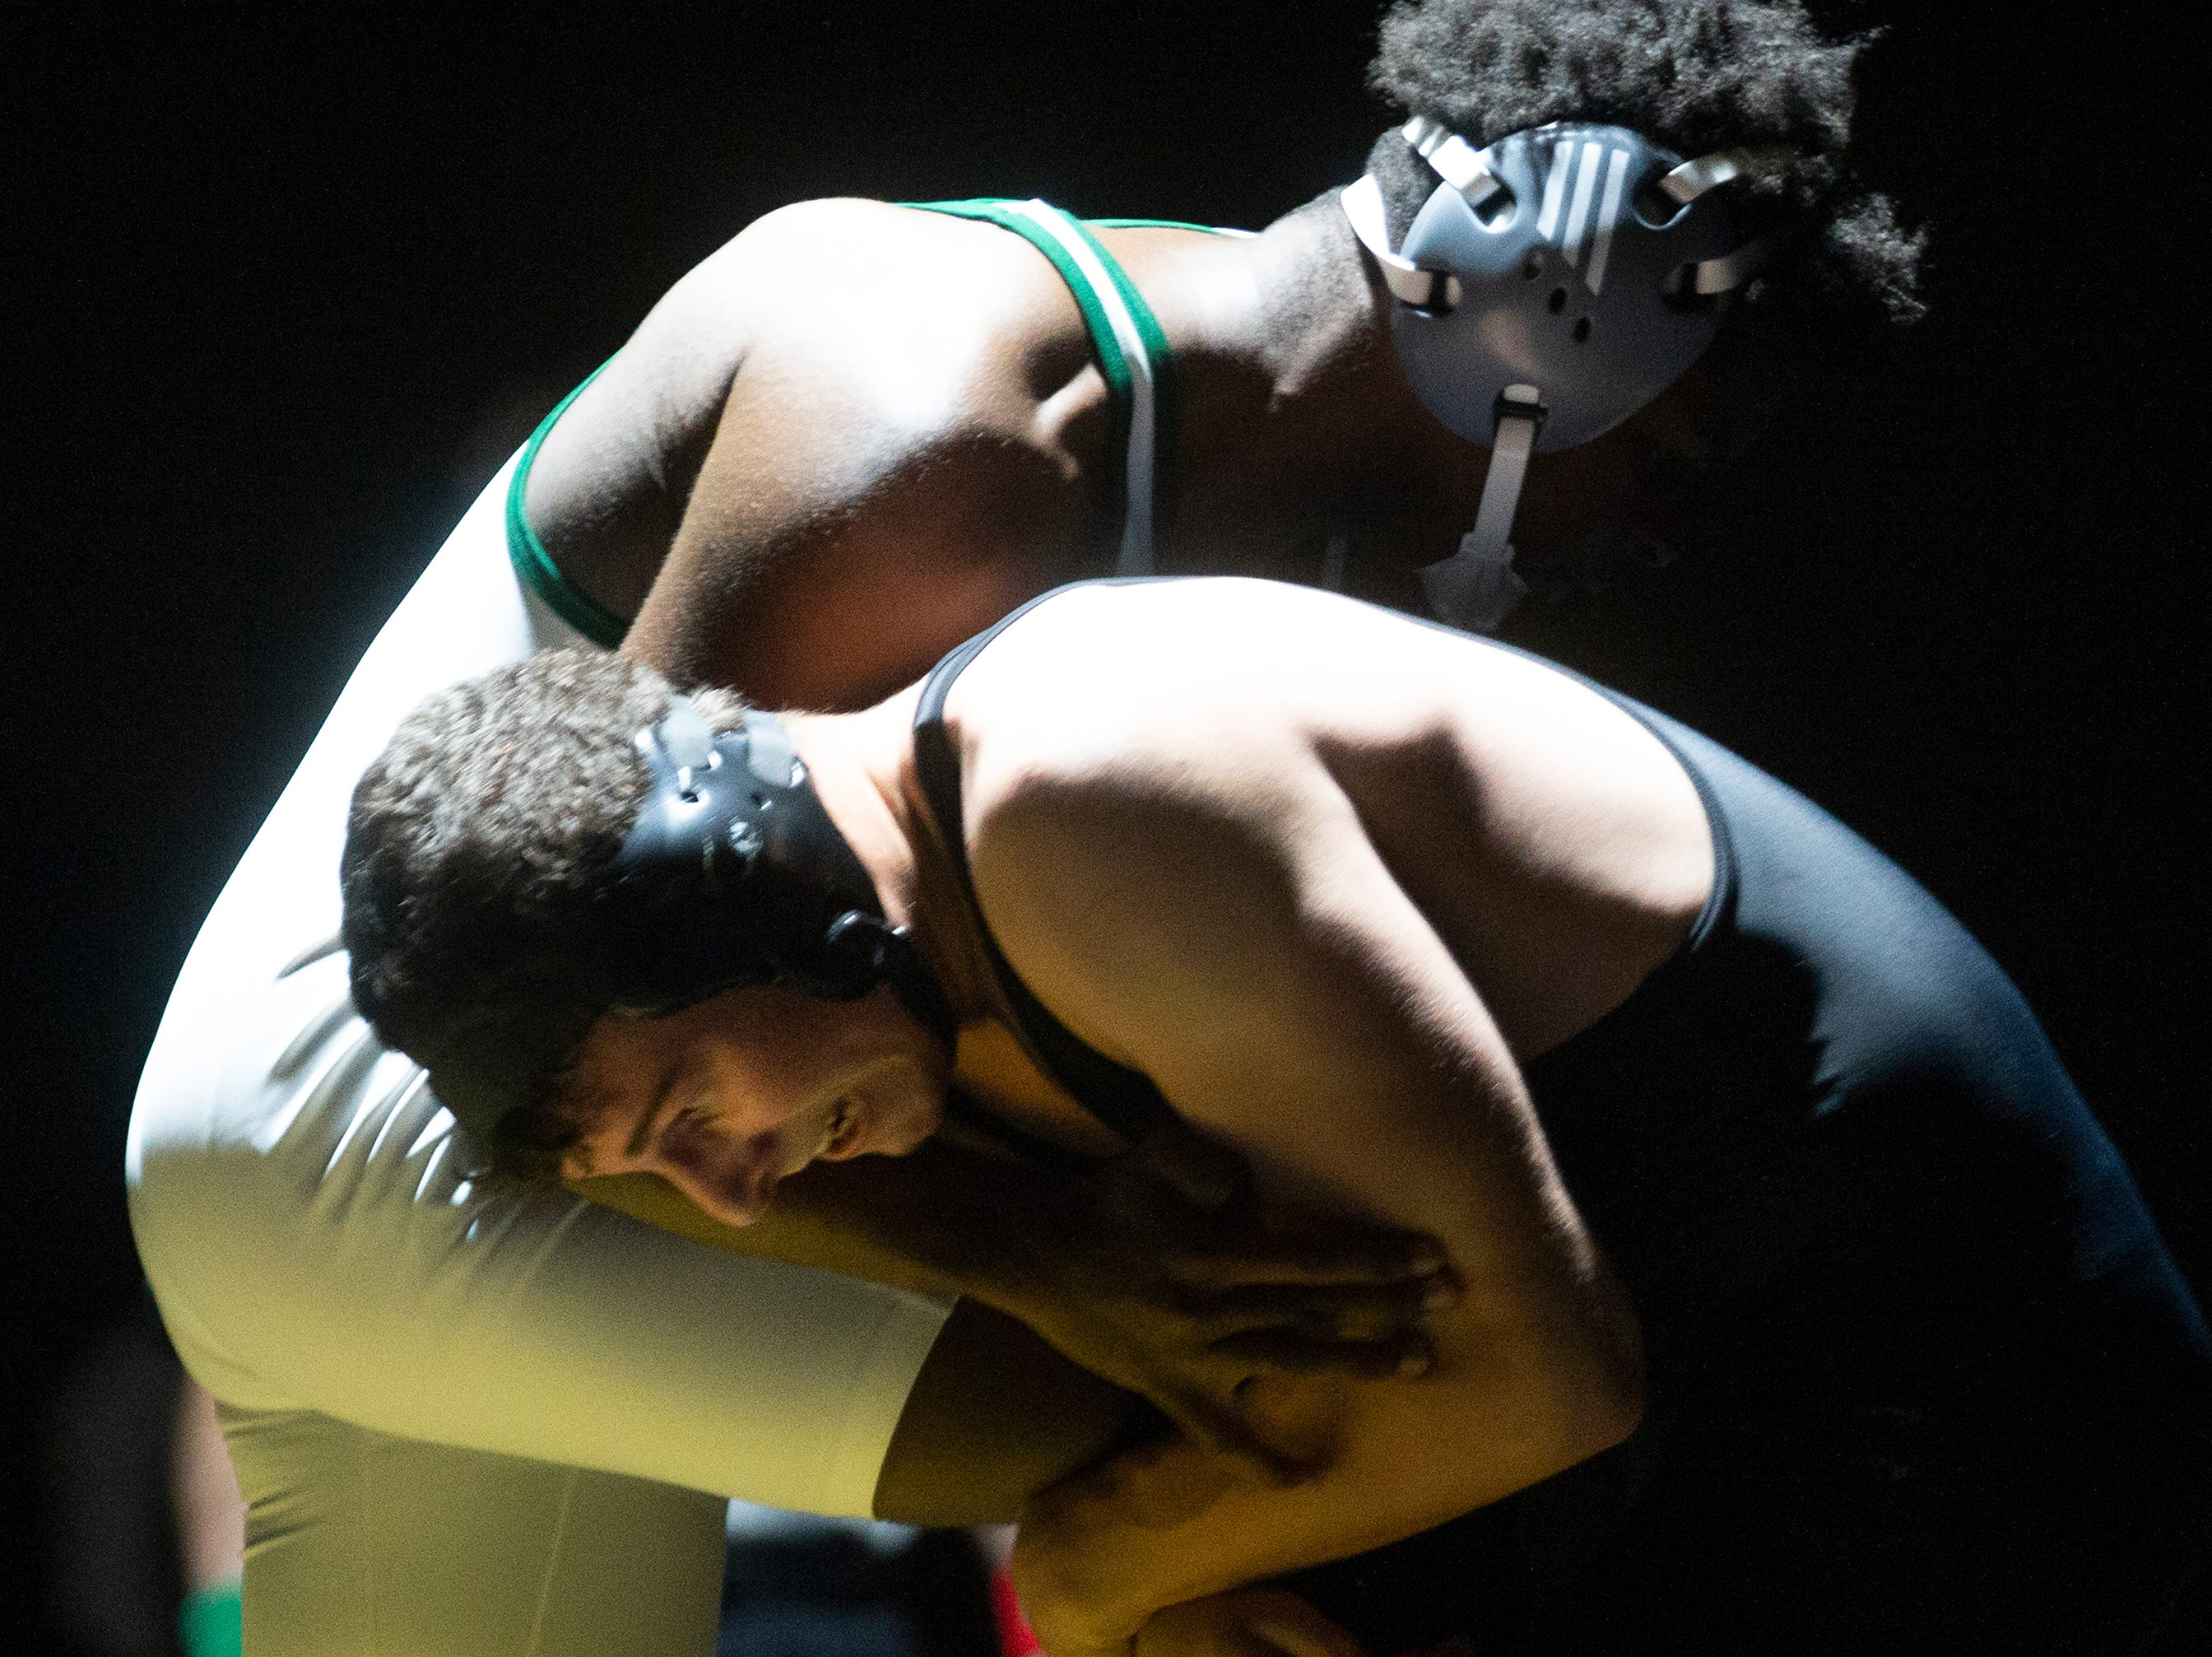 Golden Gates' Tristen Stonebraker and Palmetto Ridge High School's Anthony Mesamours wrestle in the 170-pound weight class at the Collier County Athletic Conference wrestling championship, Wednesday, Jan. 9, 2018, at Naples High School.